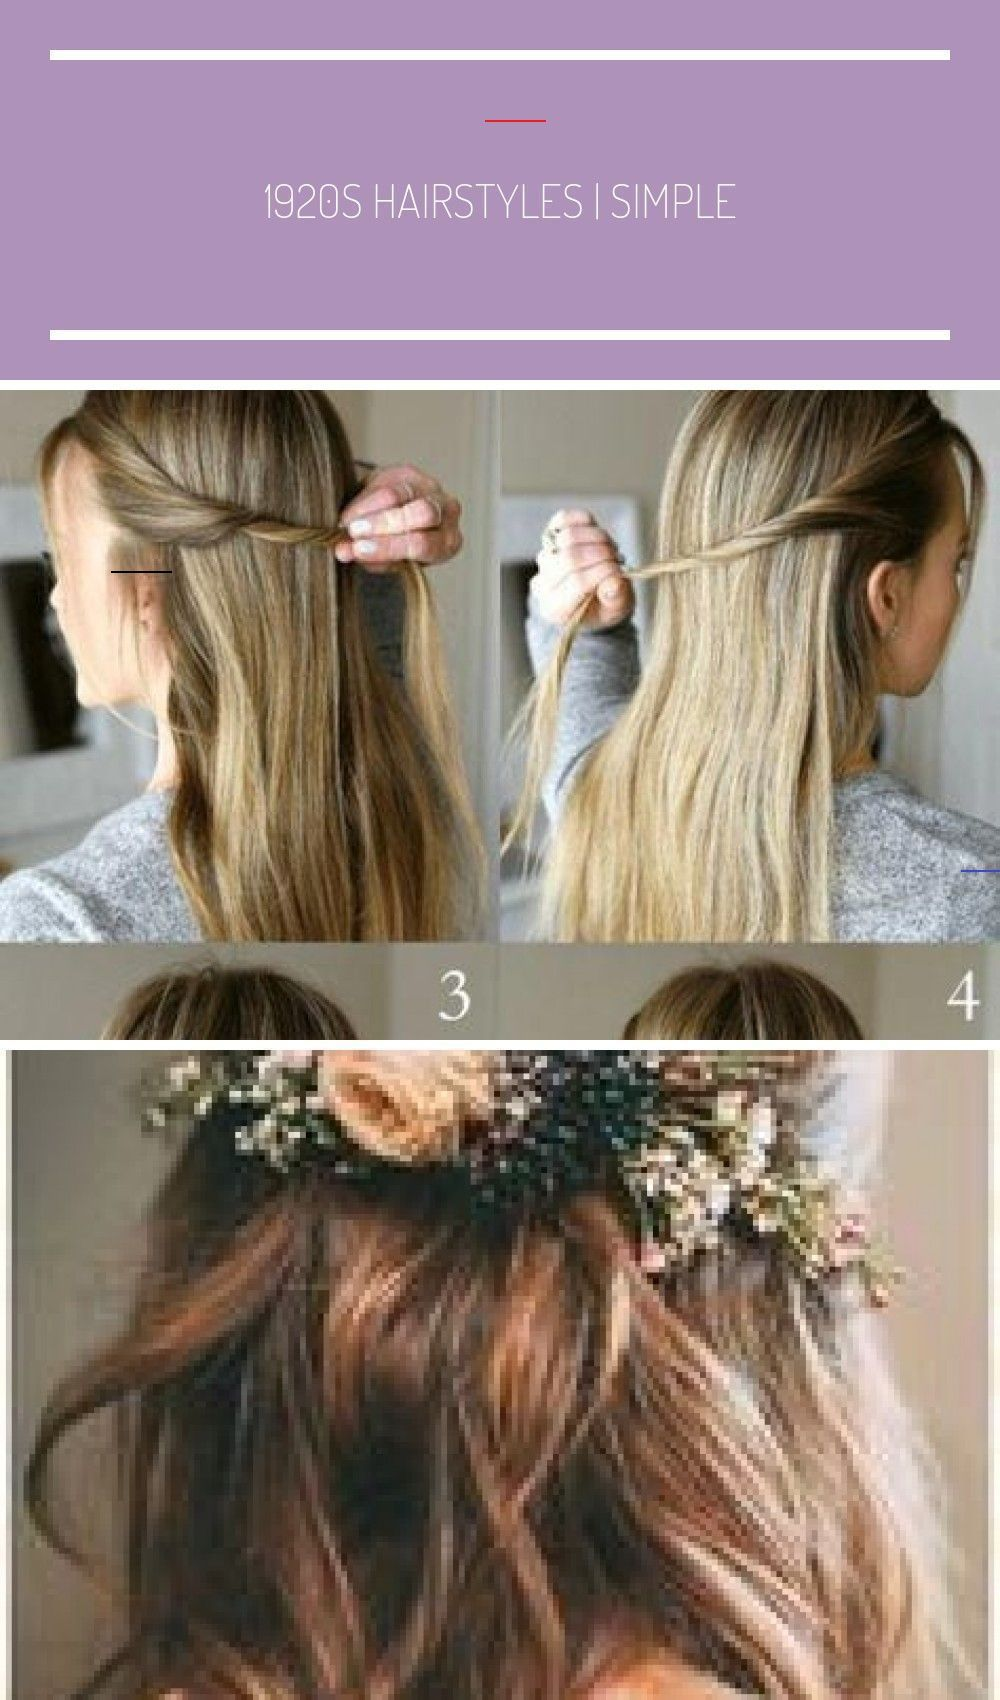 32 Cutest Prom Hairstyles For Medium Length Hair For 2021 Medium Length Hair Styles Medium Hair Styles Cute Prom Hairstyles